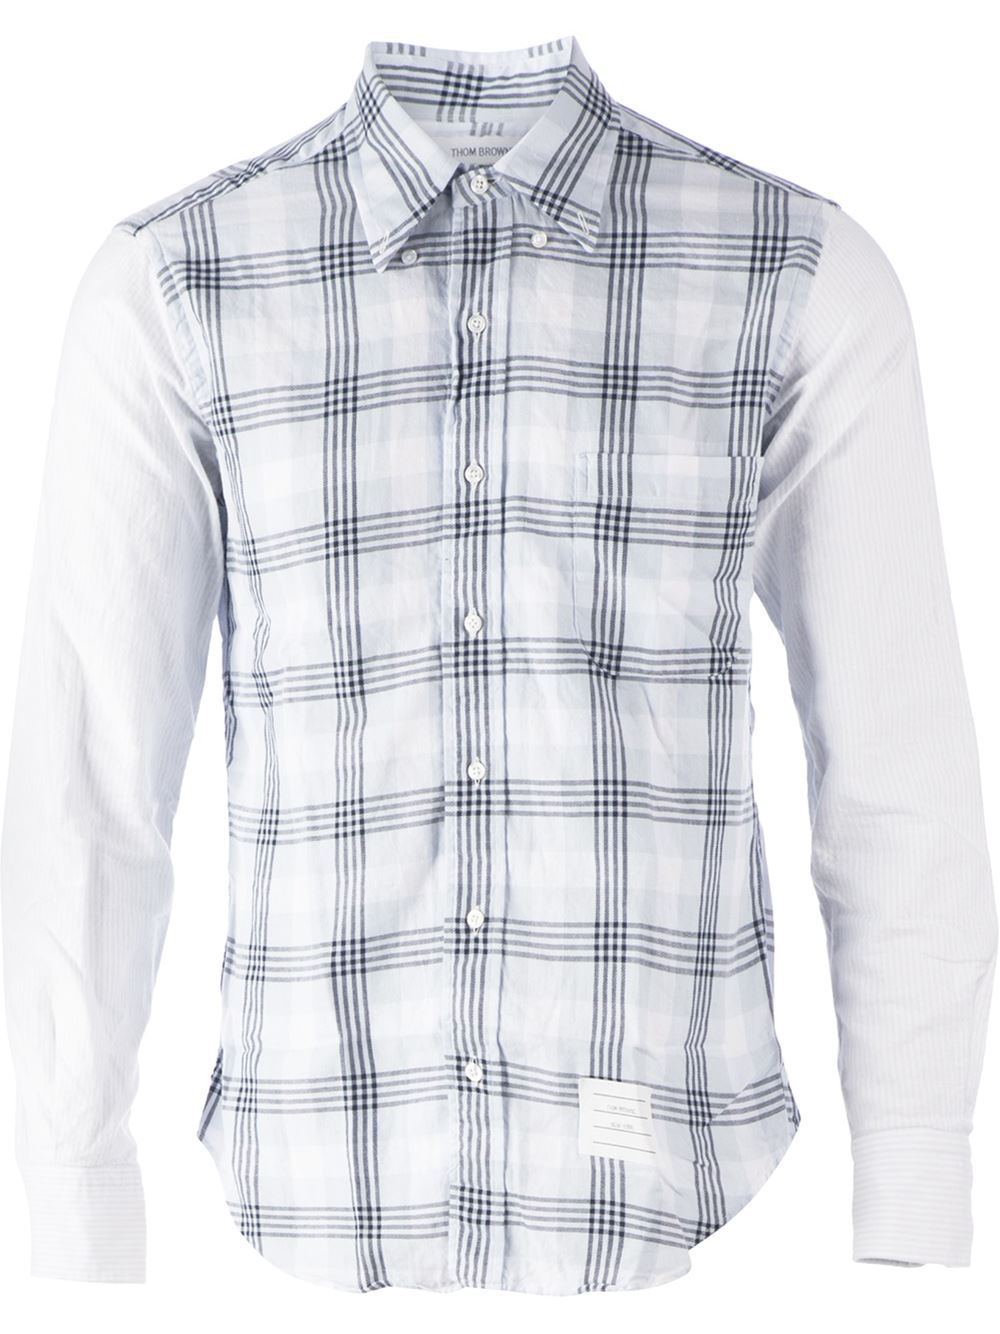 Lyst thom browne mixed print shirt in white for men for Thom browne white shirt